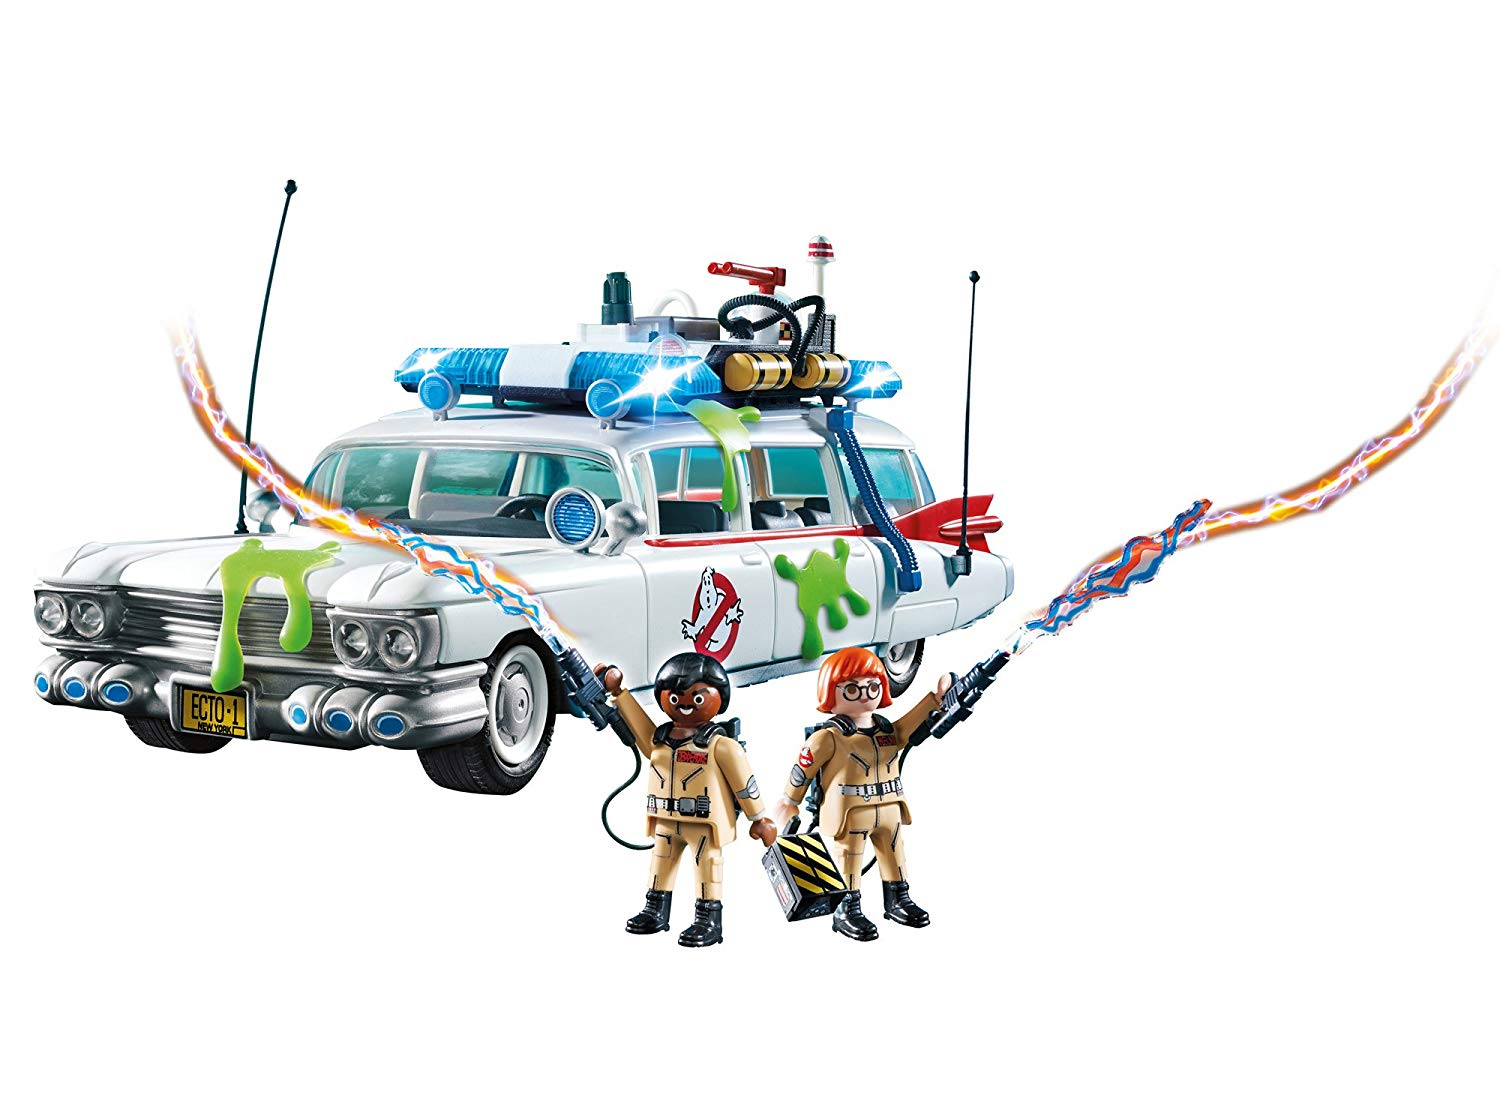 Playmobil Ghostbusters Ecto-1.